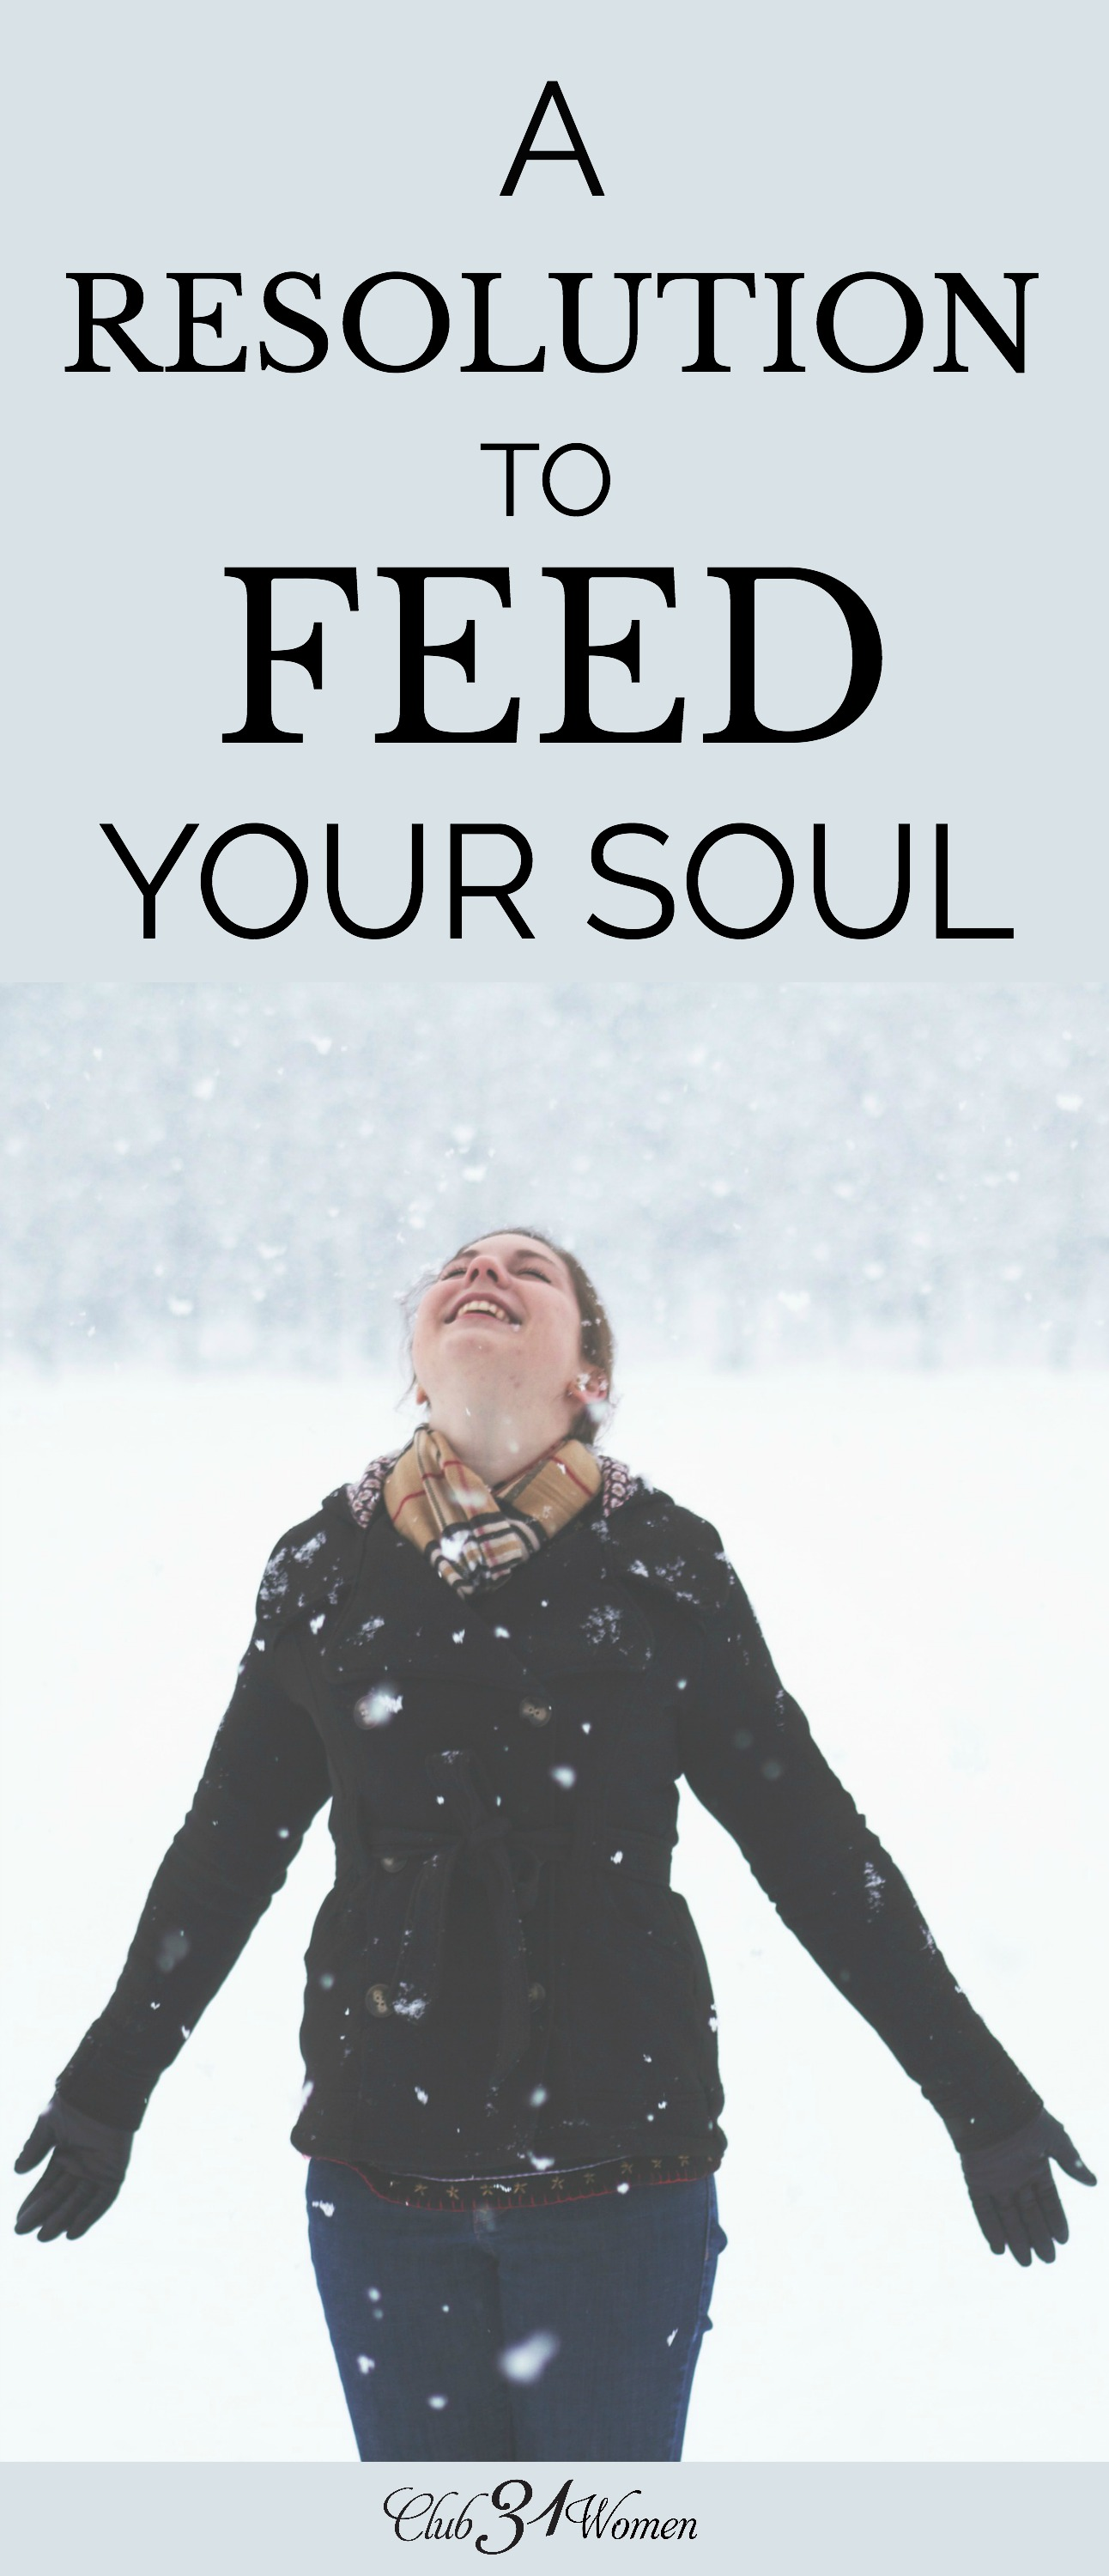 No matter what your resolutions are, make sure that the care of your soul is on that list. We care for our souls by knowing God through His word. via @Club31Women